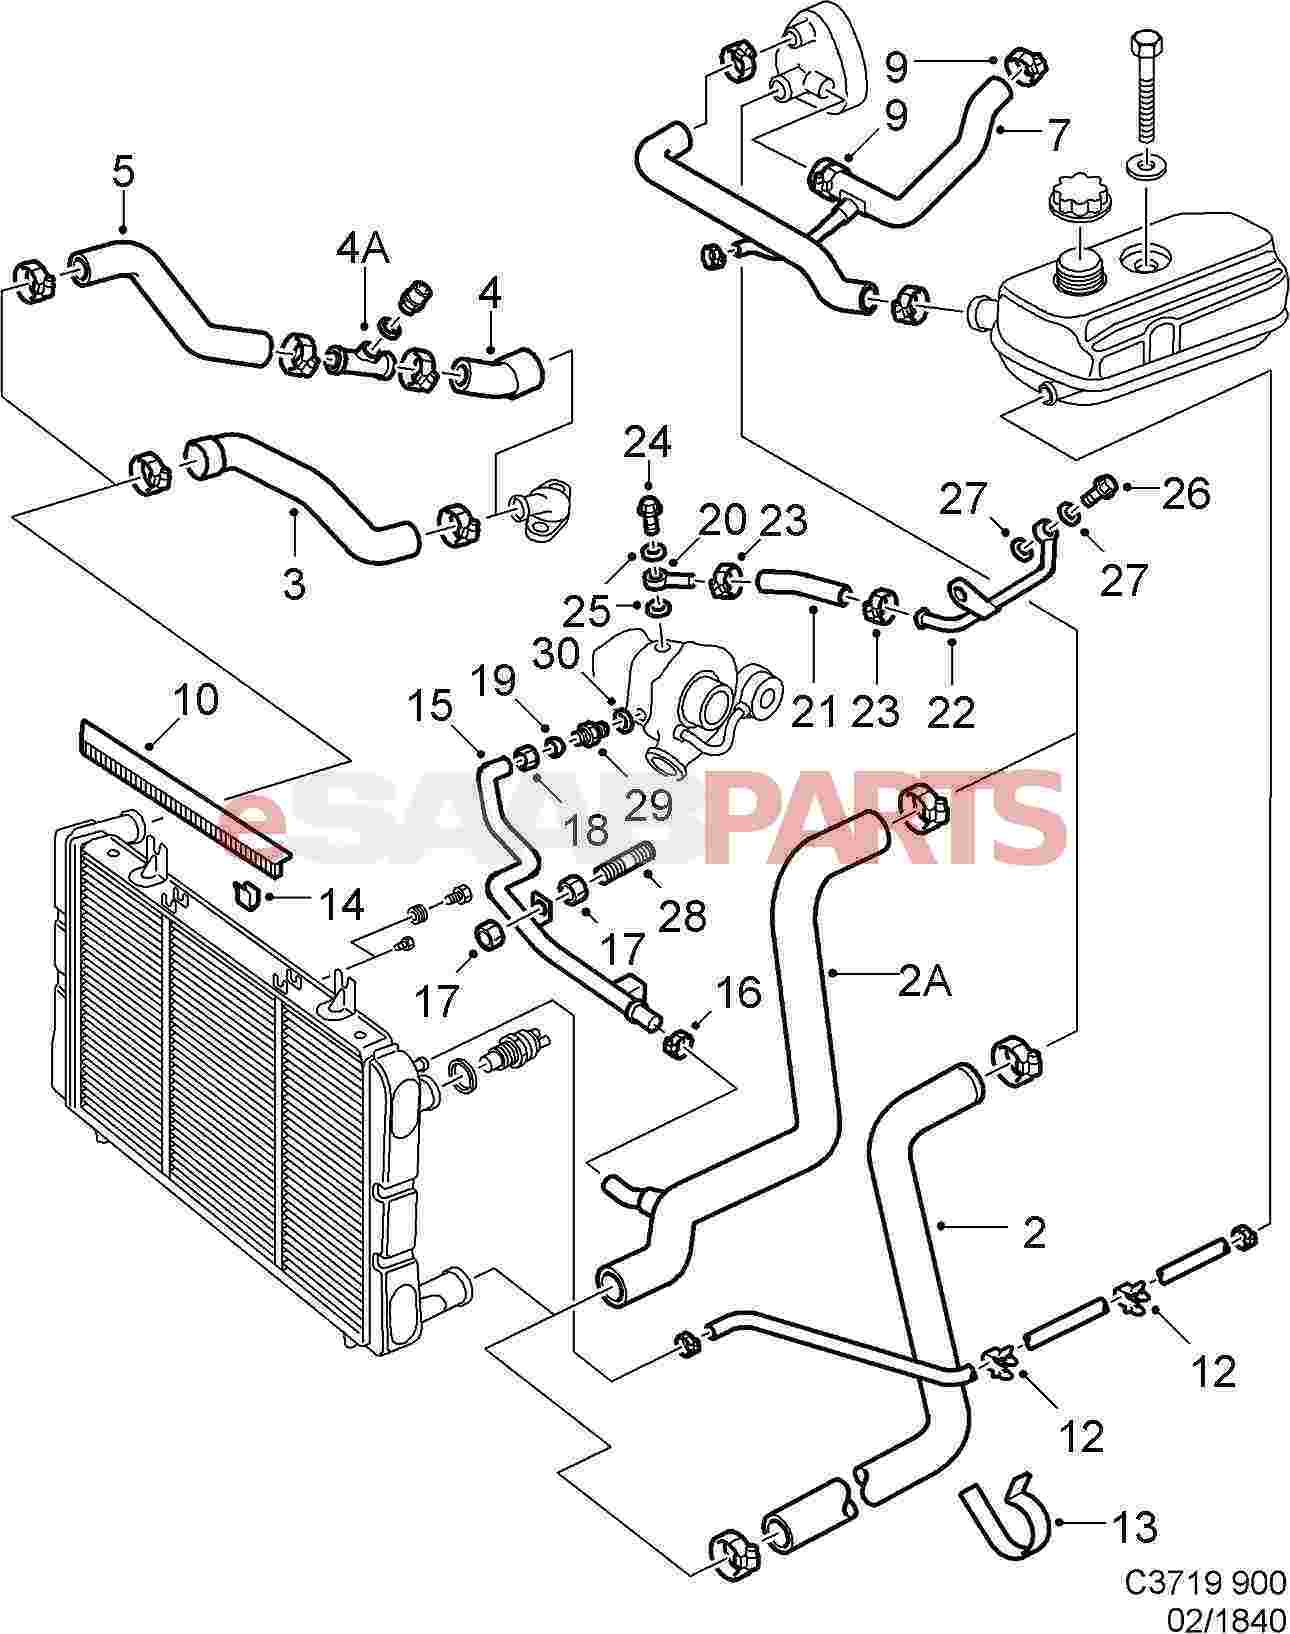 [WRG-2077] 2000 Vw Jetta 2 0 Engine Diagram